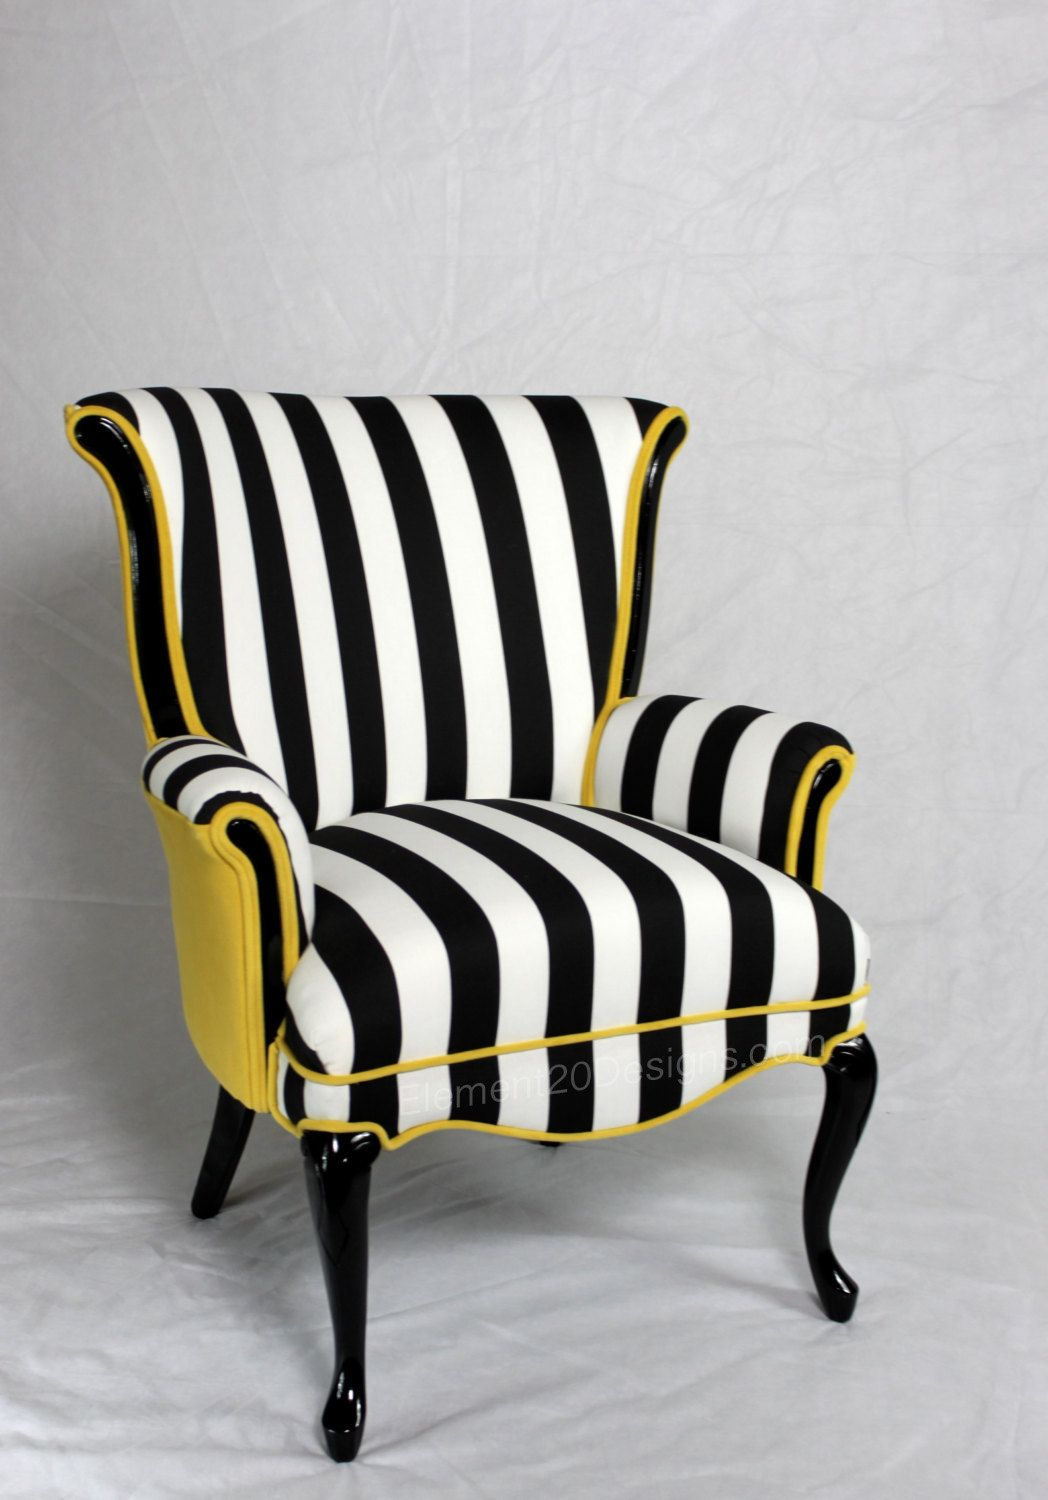 Sold CAN REPLICATE made in the USA Black and White striped Vintage